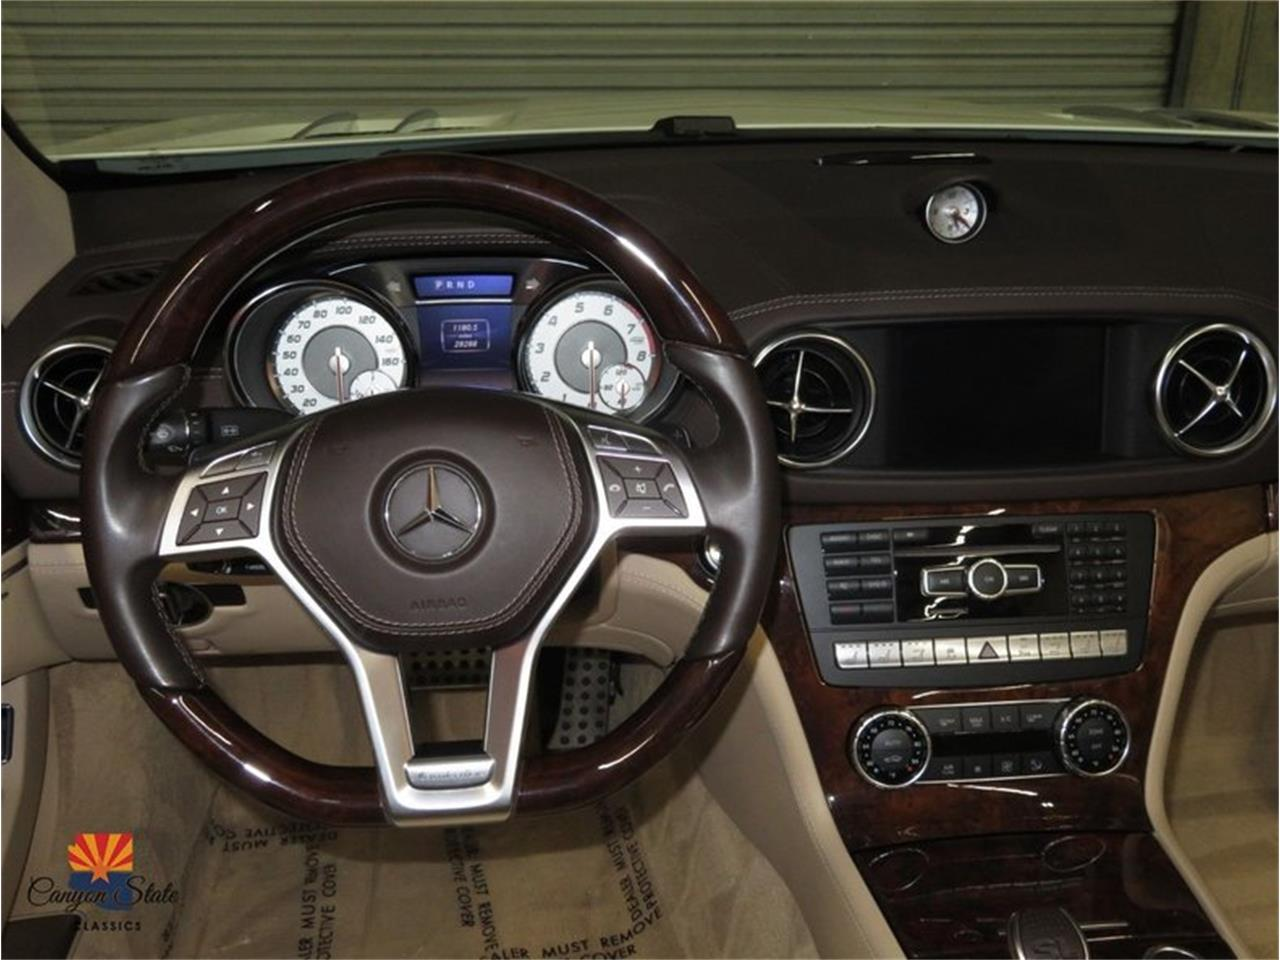 2013 Mercedes-Benz SL-Class for sale in Tempe, AZ – photo 95